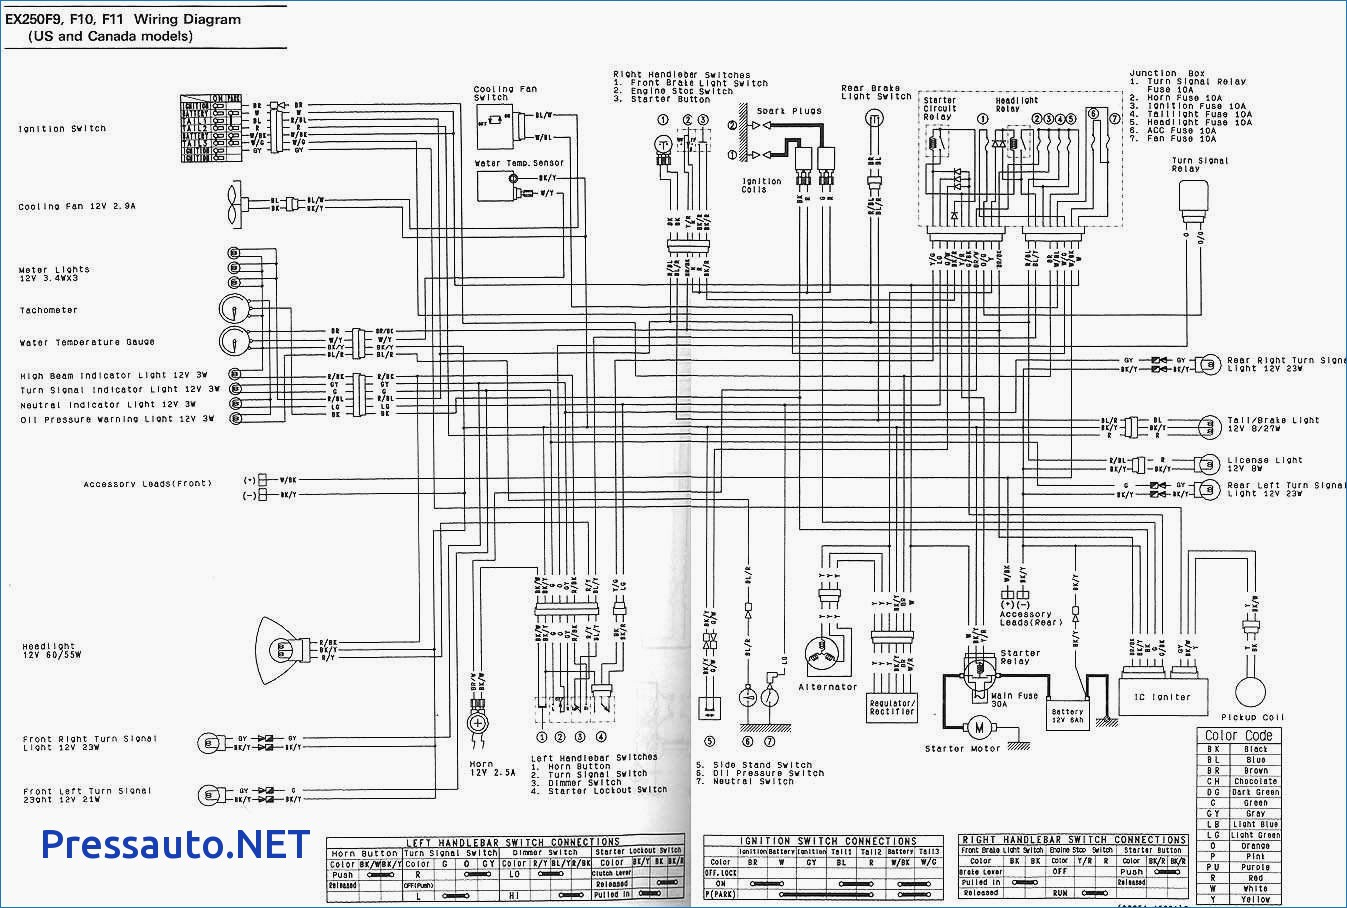 Old Trailer Wiring Diagram | Manual E-Books - Old Trailer Wiring Diagram